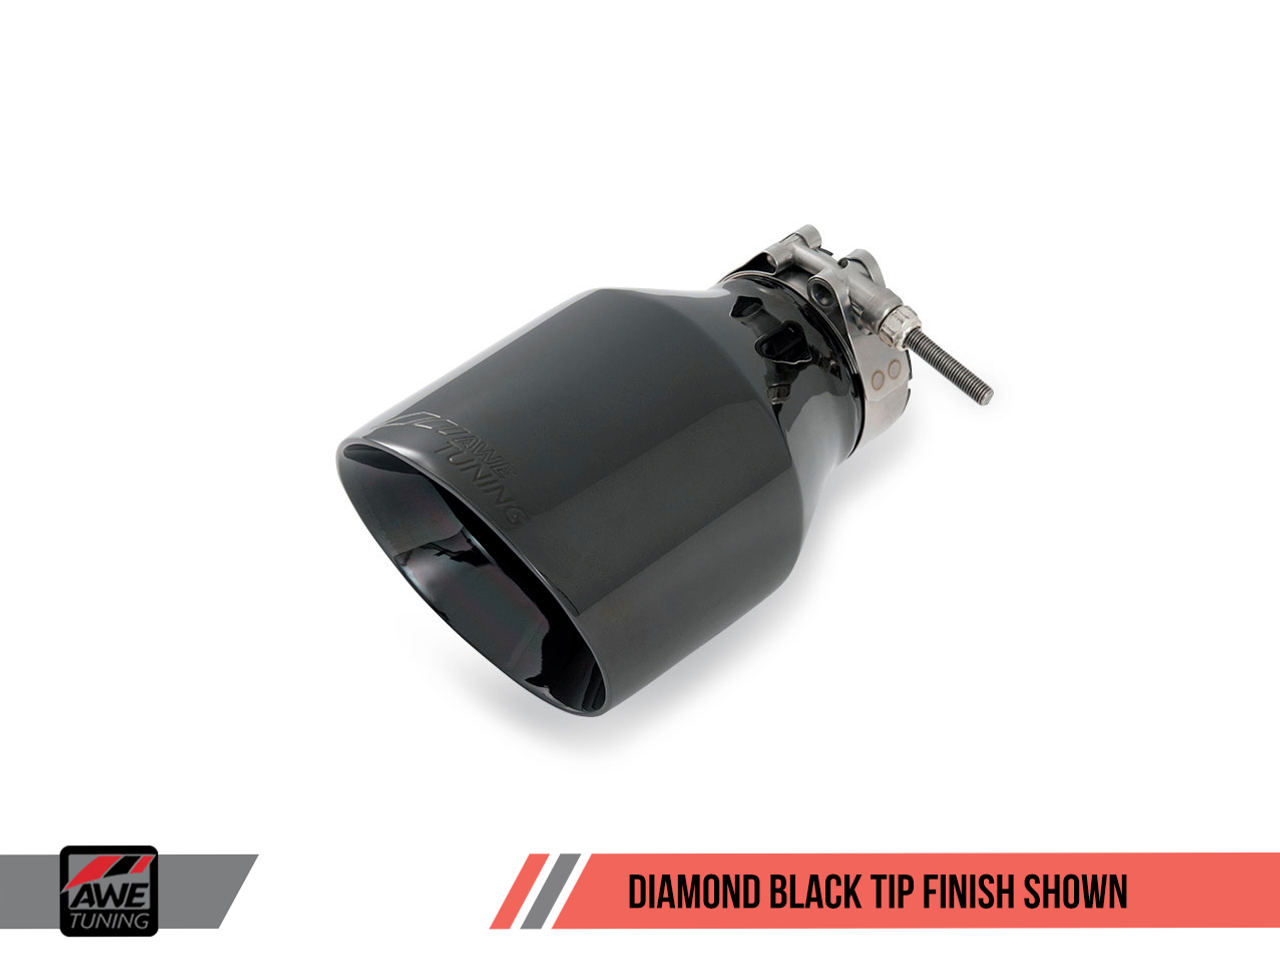 AWE Tuning - Diamond Black Tailpipe